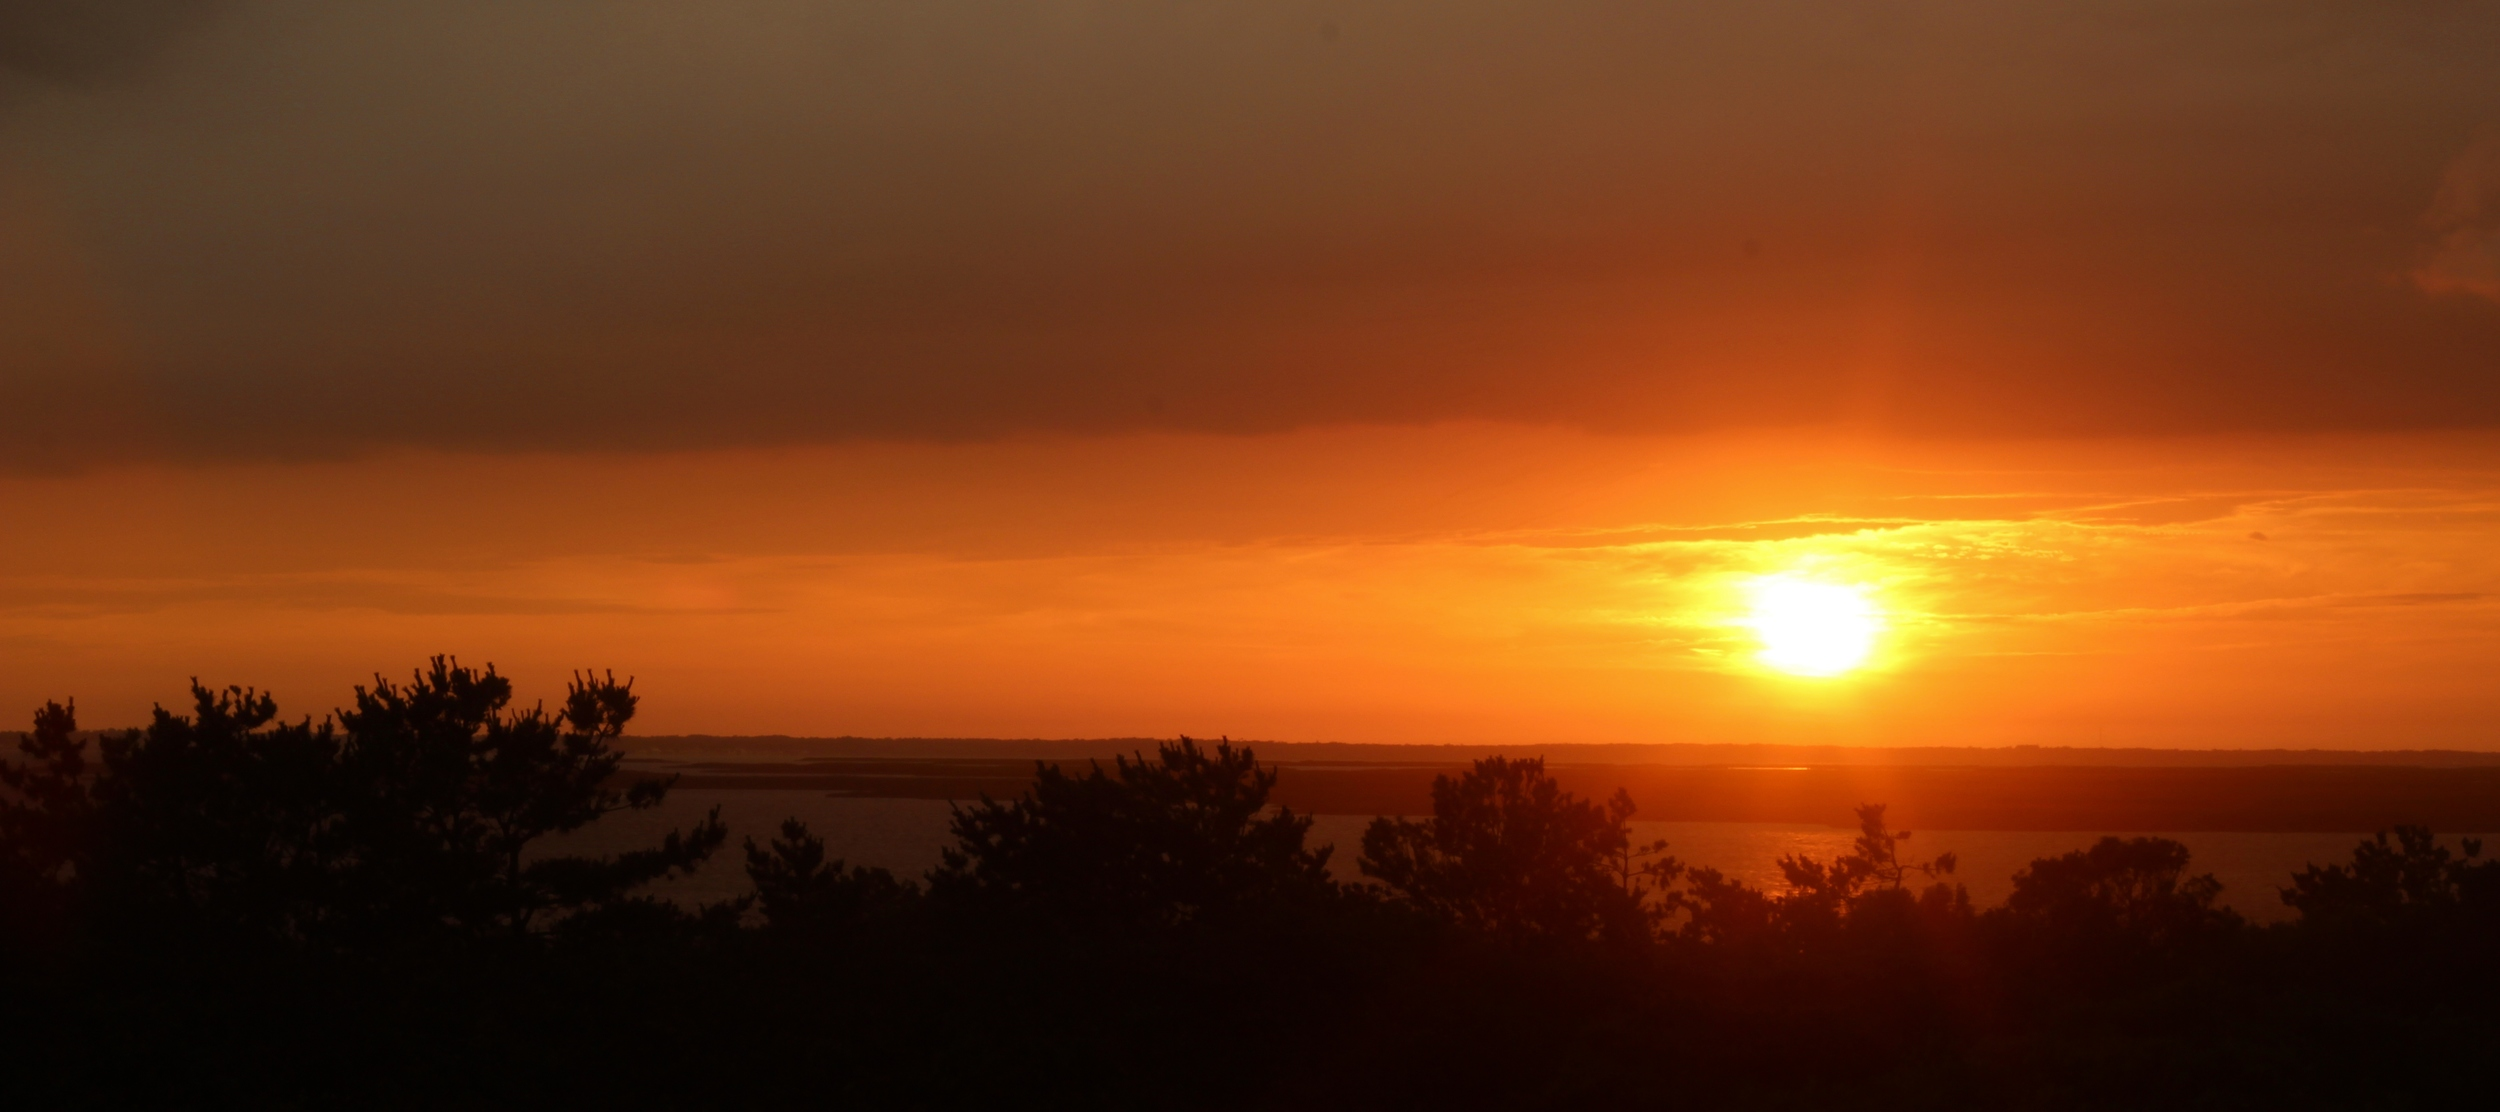 Sunset over the Bay